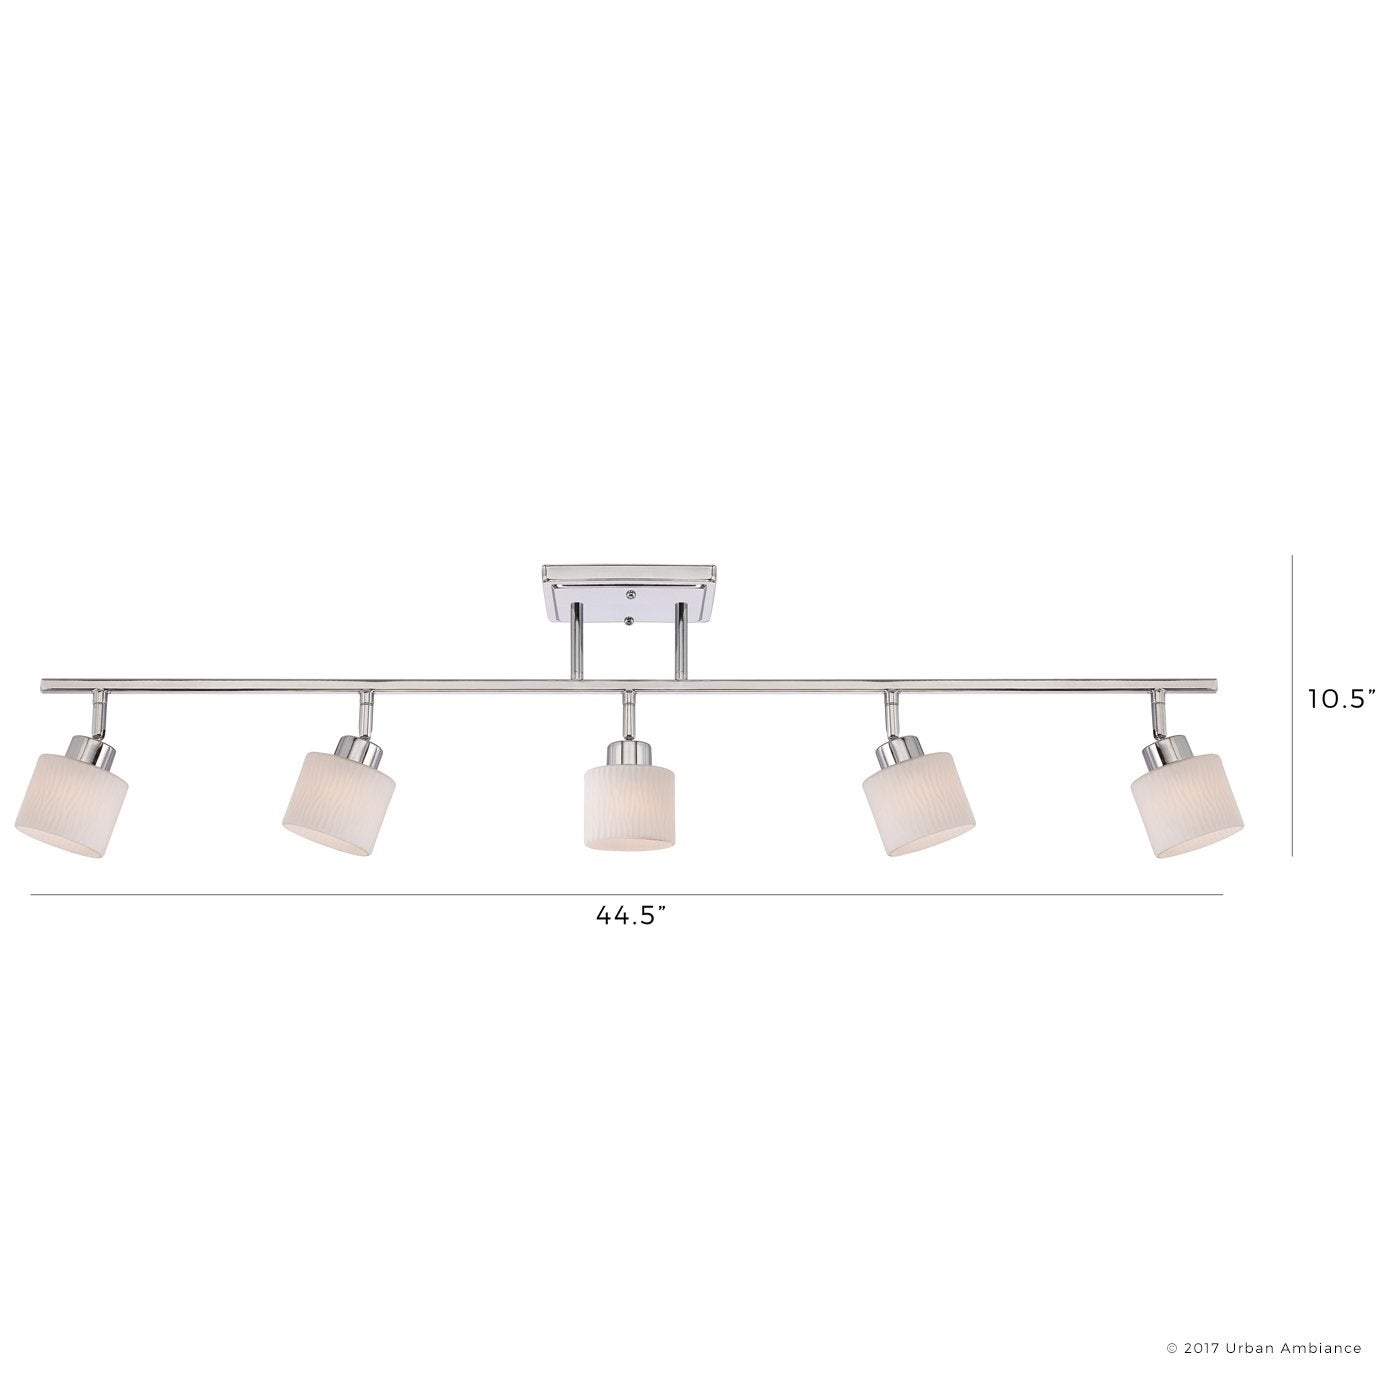 shop luxury modern track lighting 10 5 h x 44 5 w with spa style